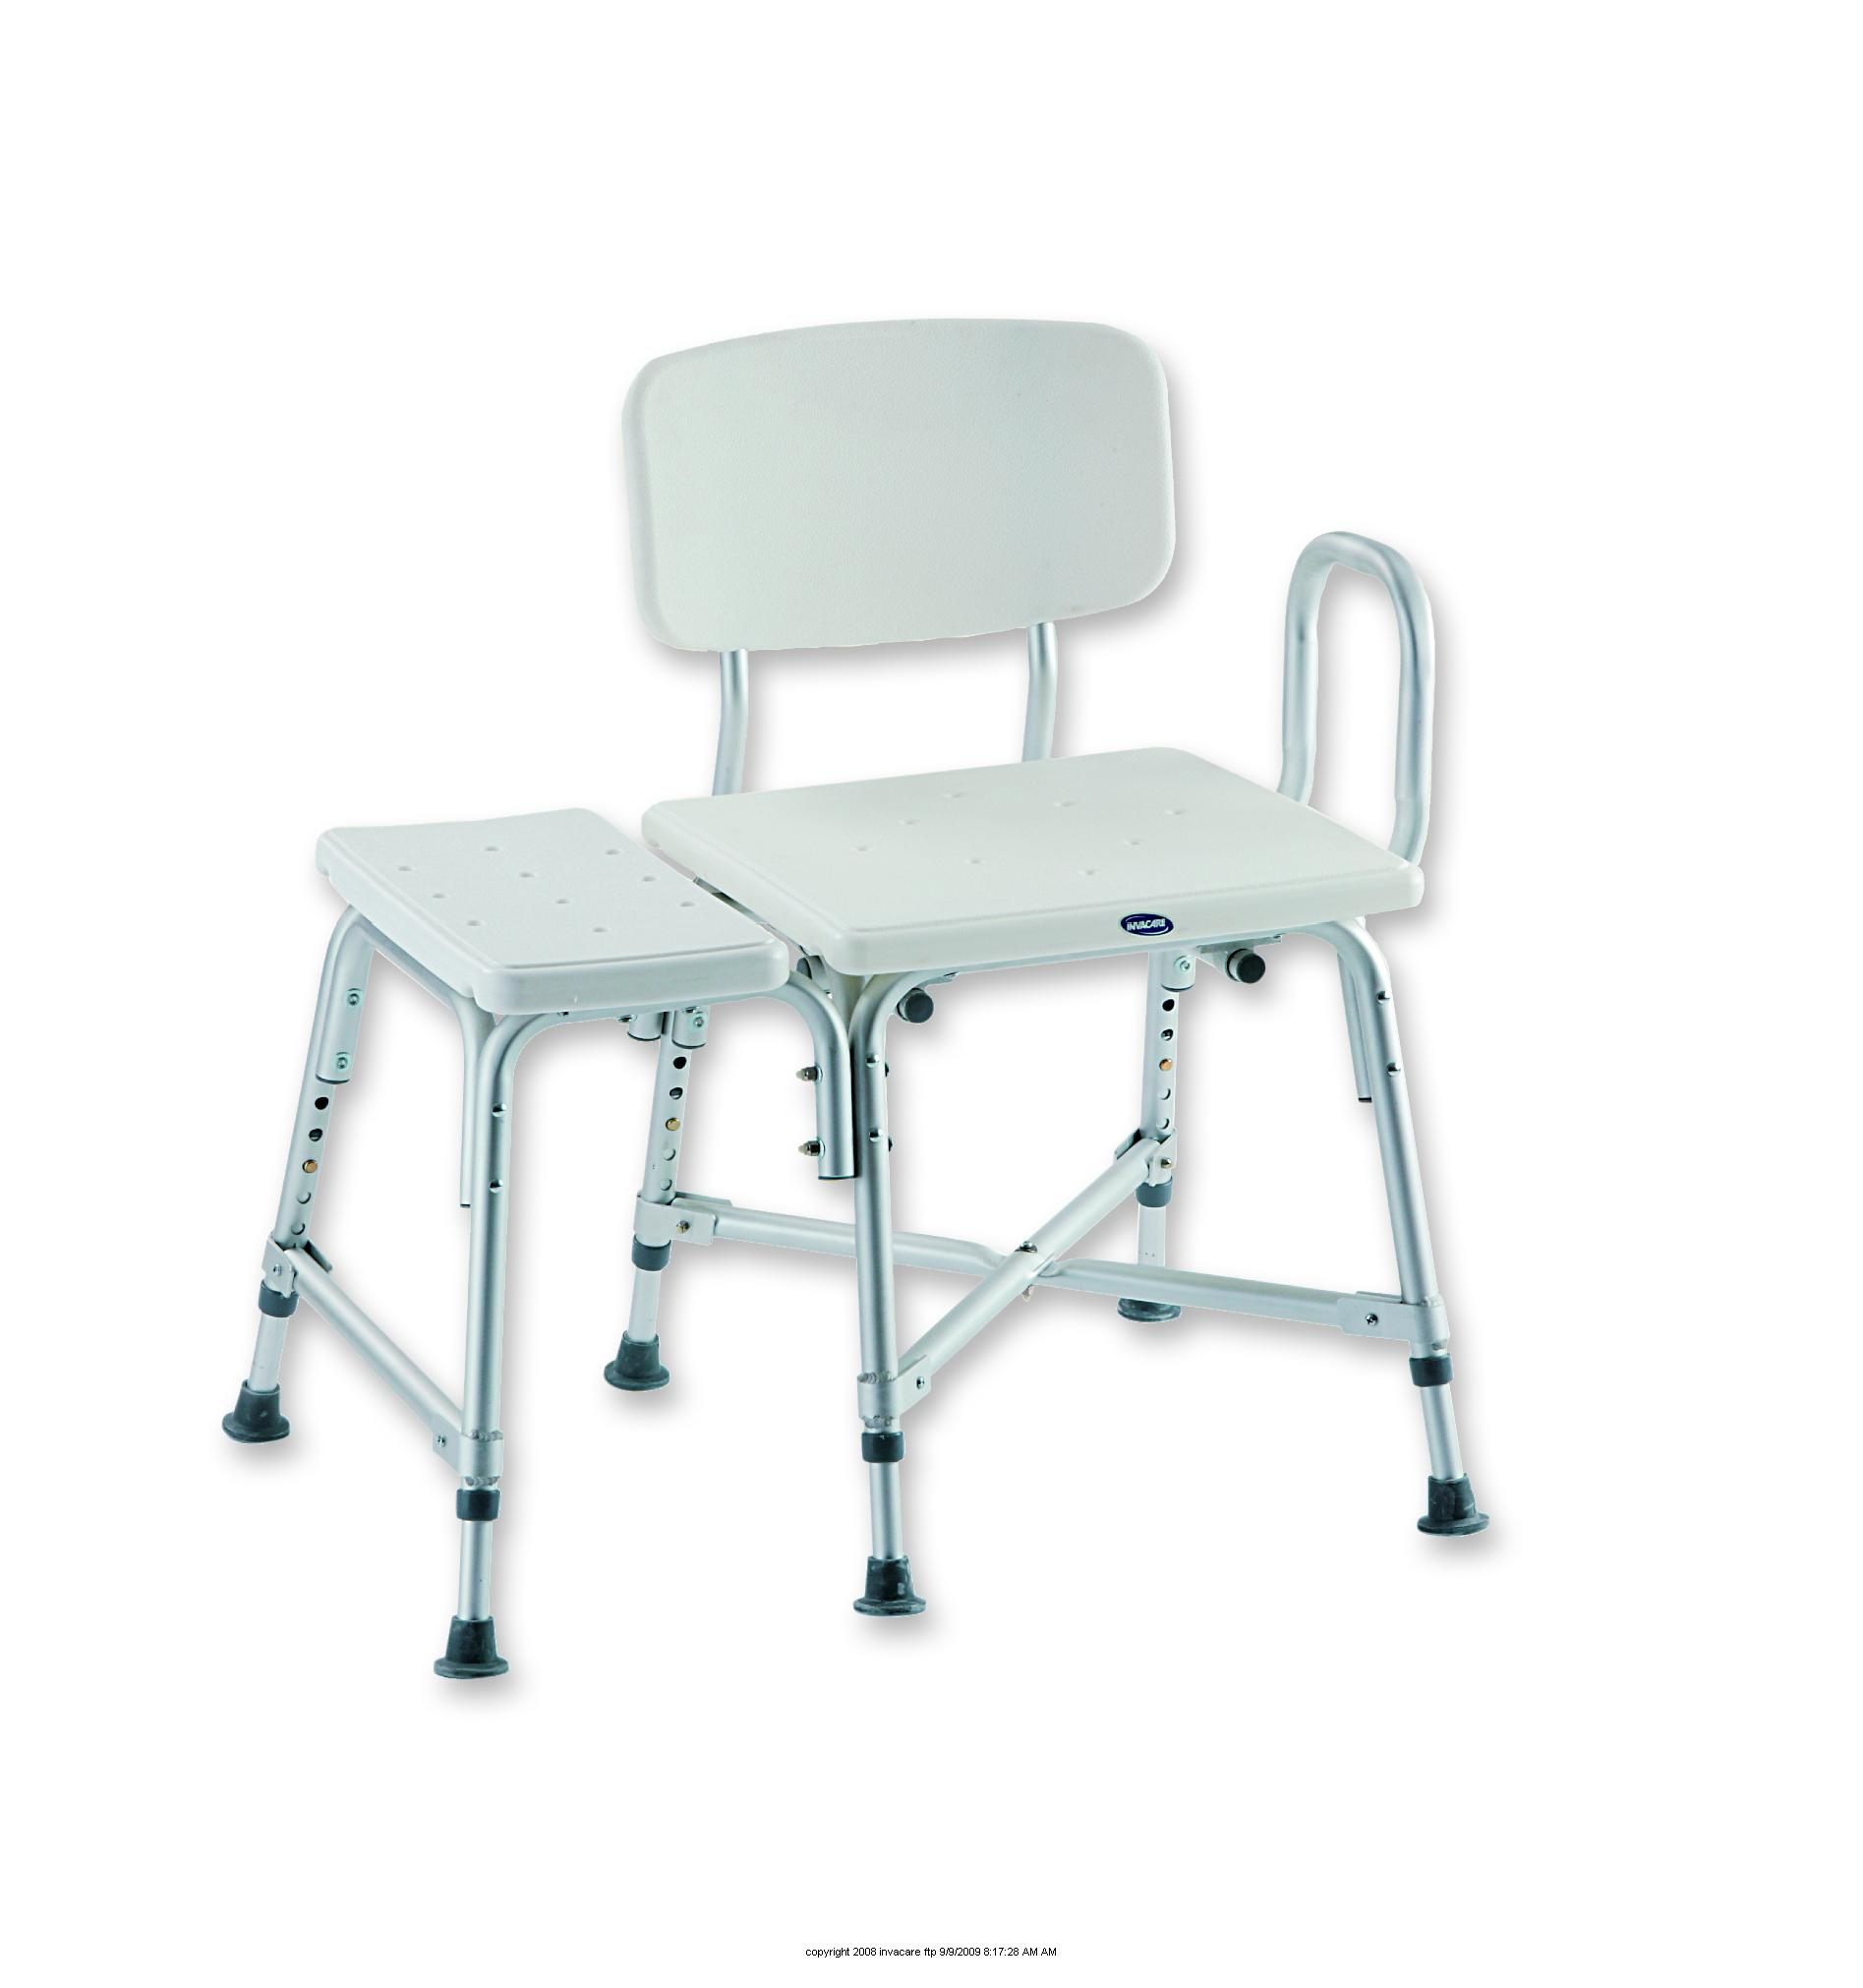 shower chair vs tub transfer bench cheap parson chairs bariatric